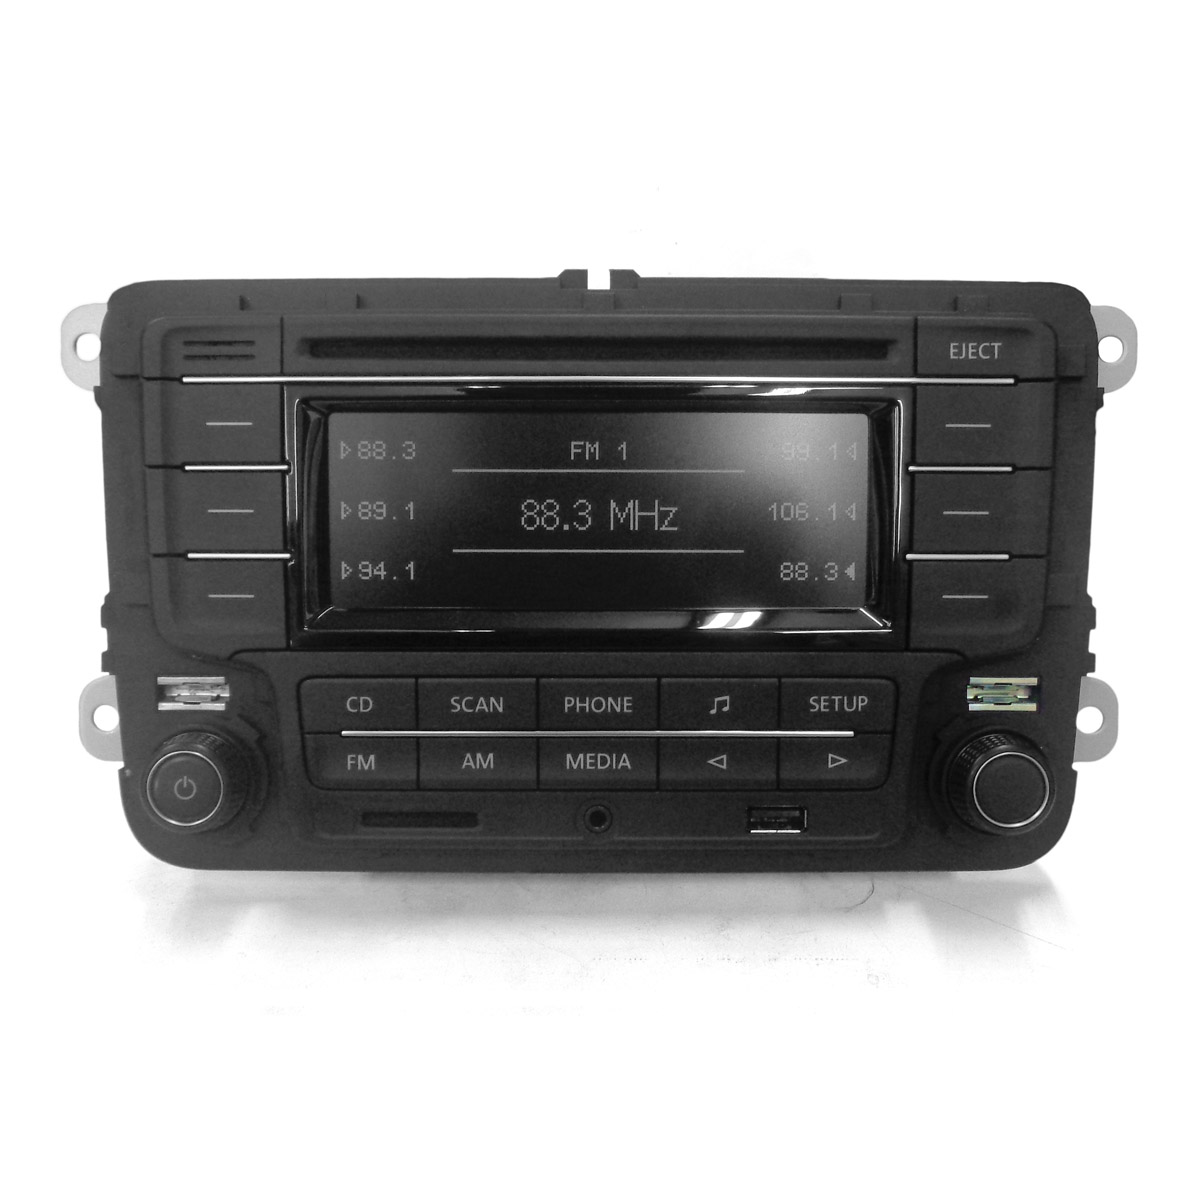 Auto Rádio Com Cd Player Mp3 / Cartão Sd / Usb / Bluetooth -